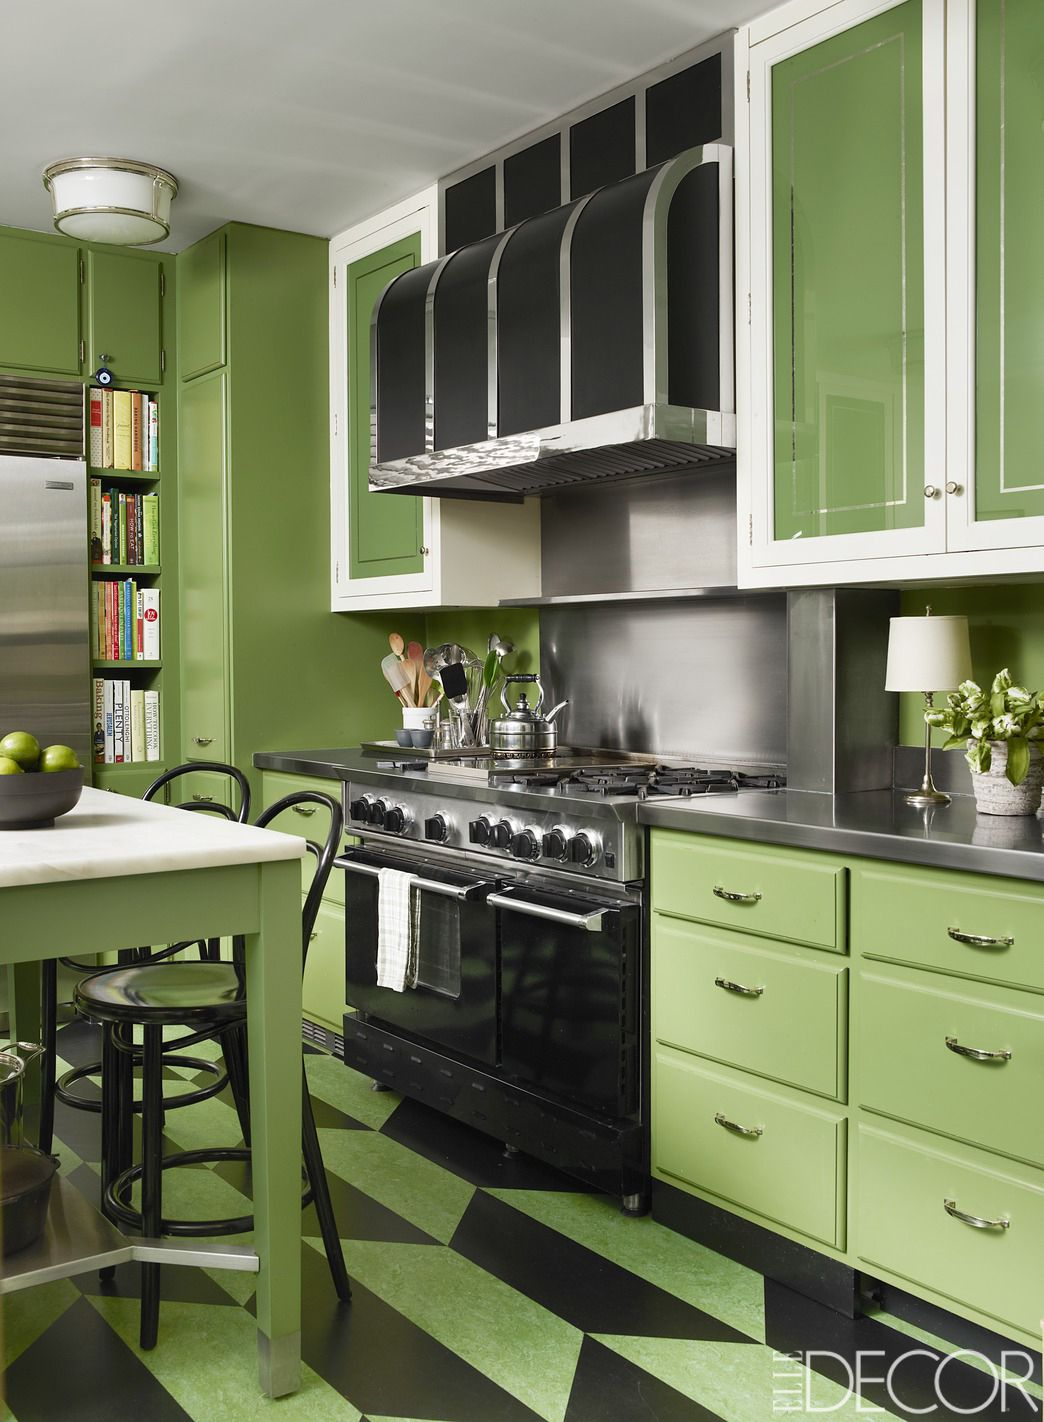 Green room color ideas - Green Room Color Ideas 29